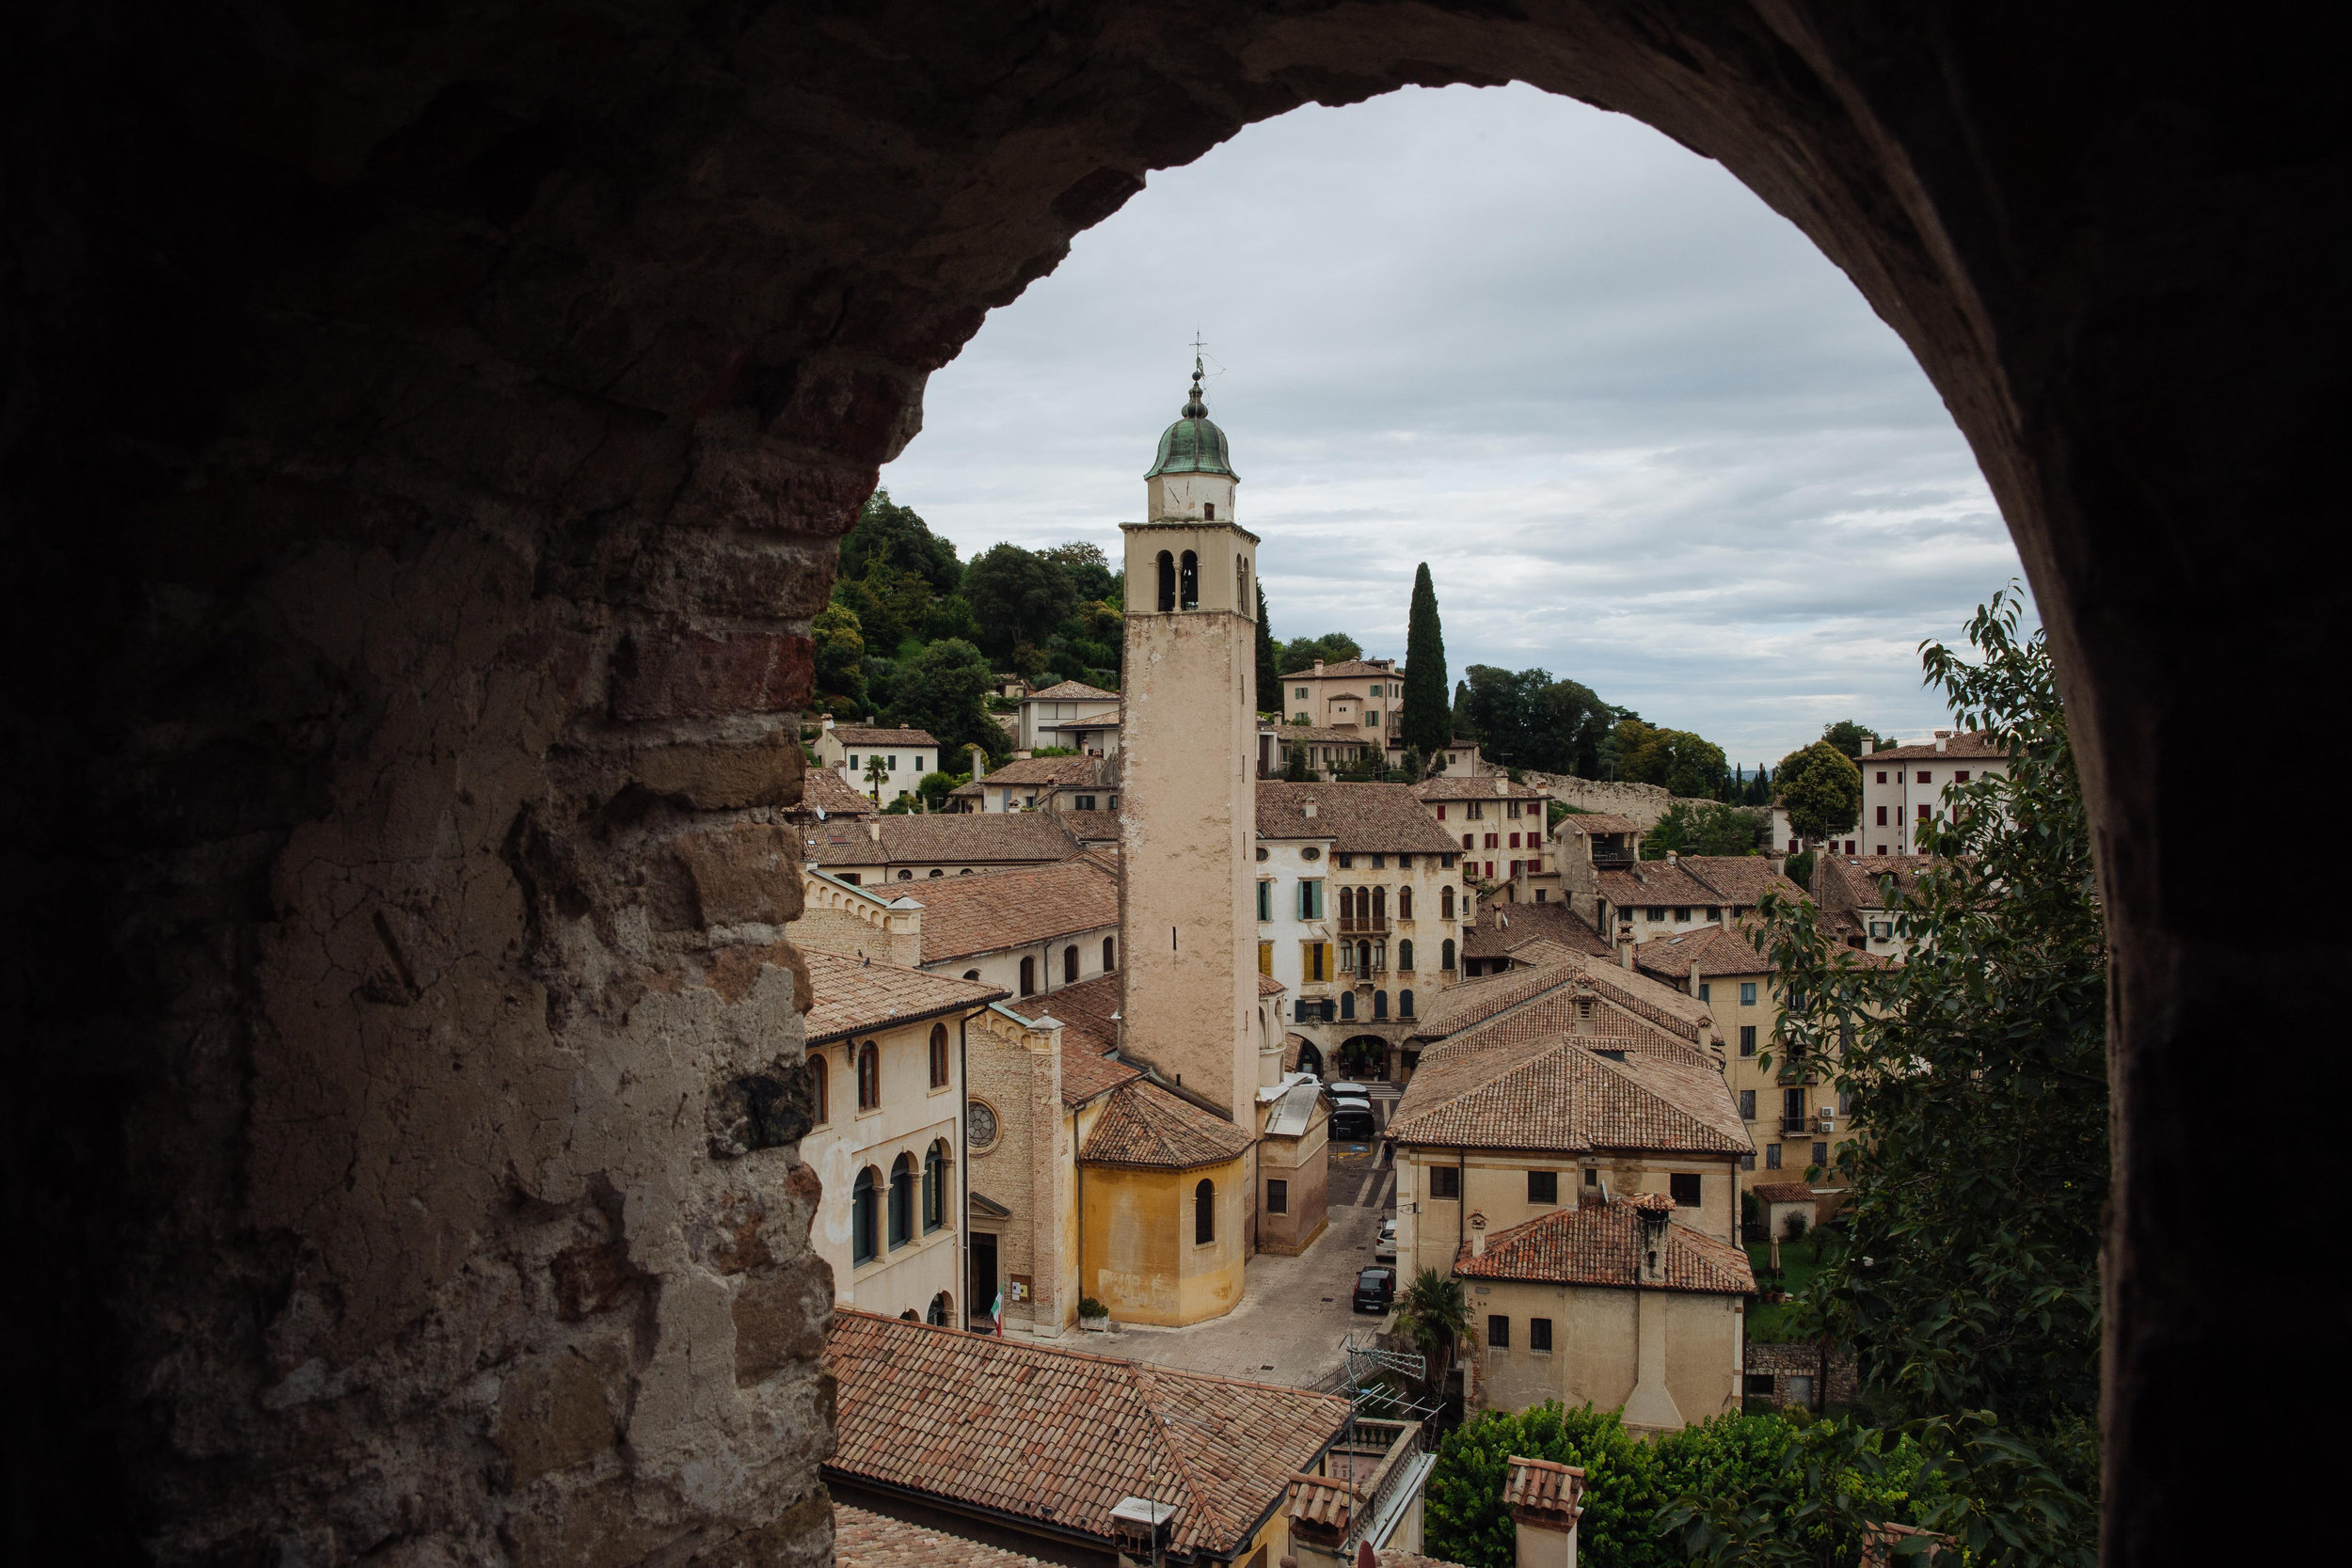 """Gianfrancesco Malipiero - """"At the top of the Fortress is feels as though you are at the top of a diamond, where every facet inspires an iridescent panorama."""""""